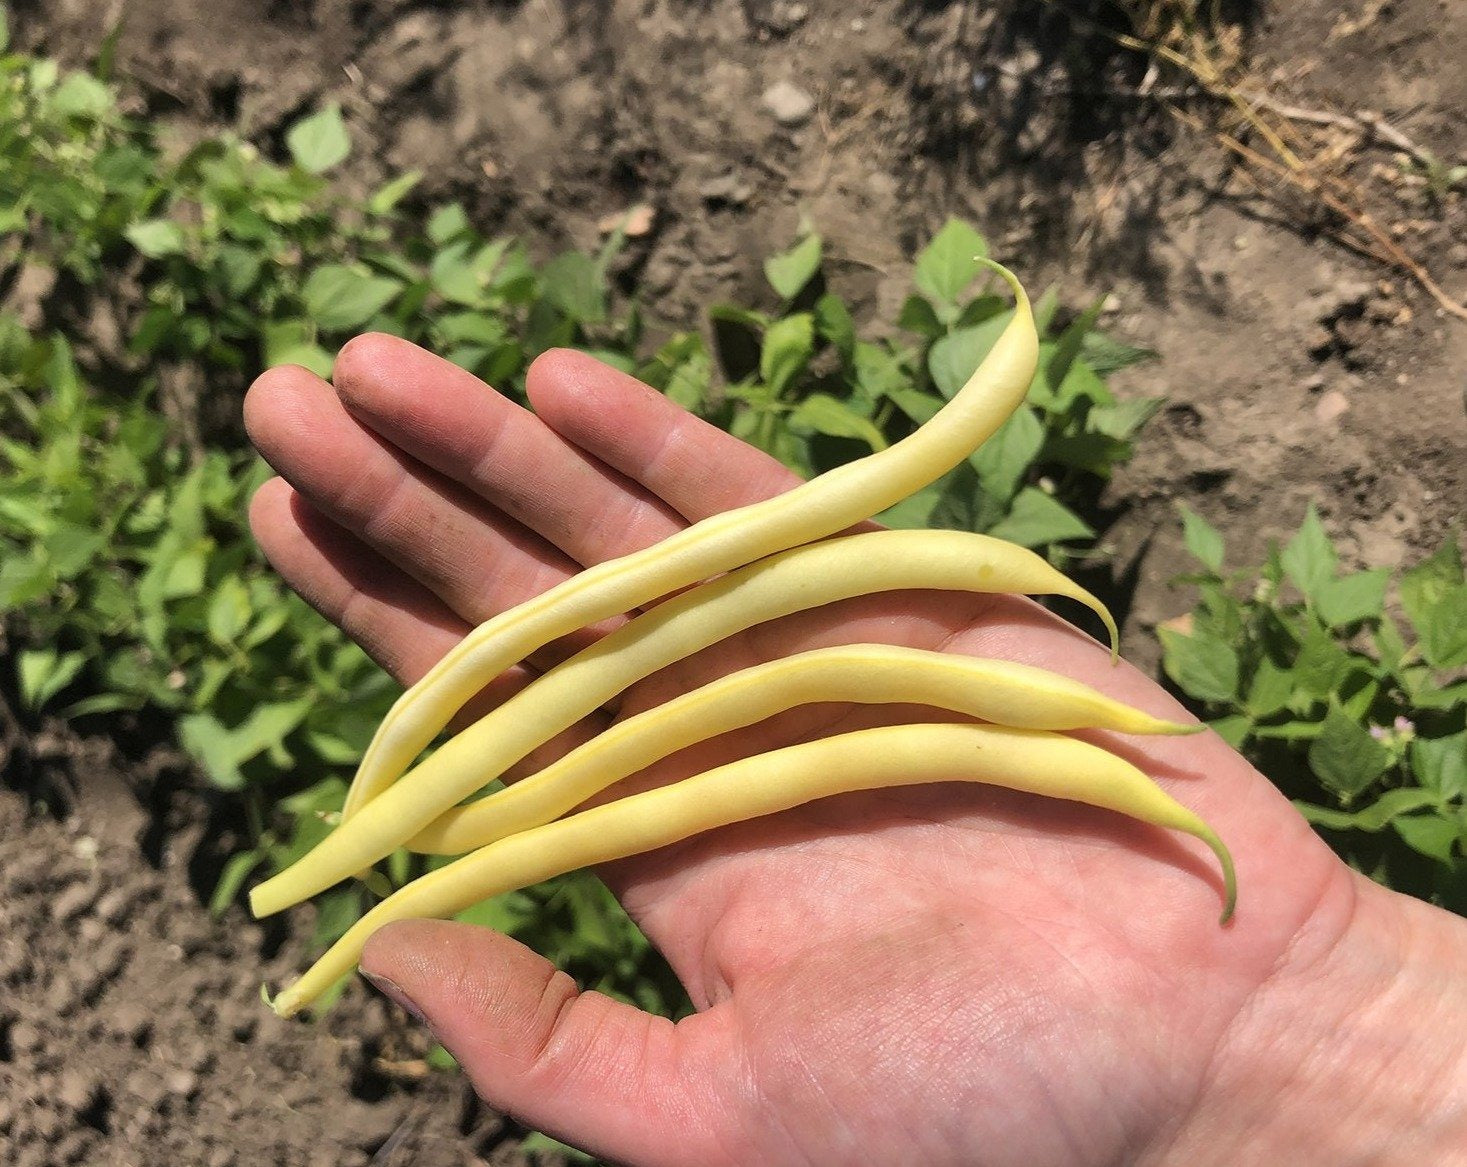 Yellow/Wax Bean (Bush) - Major